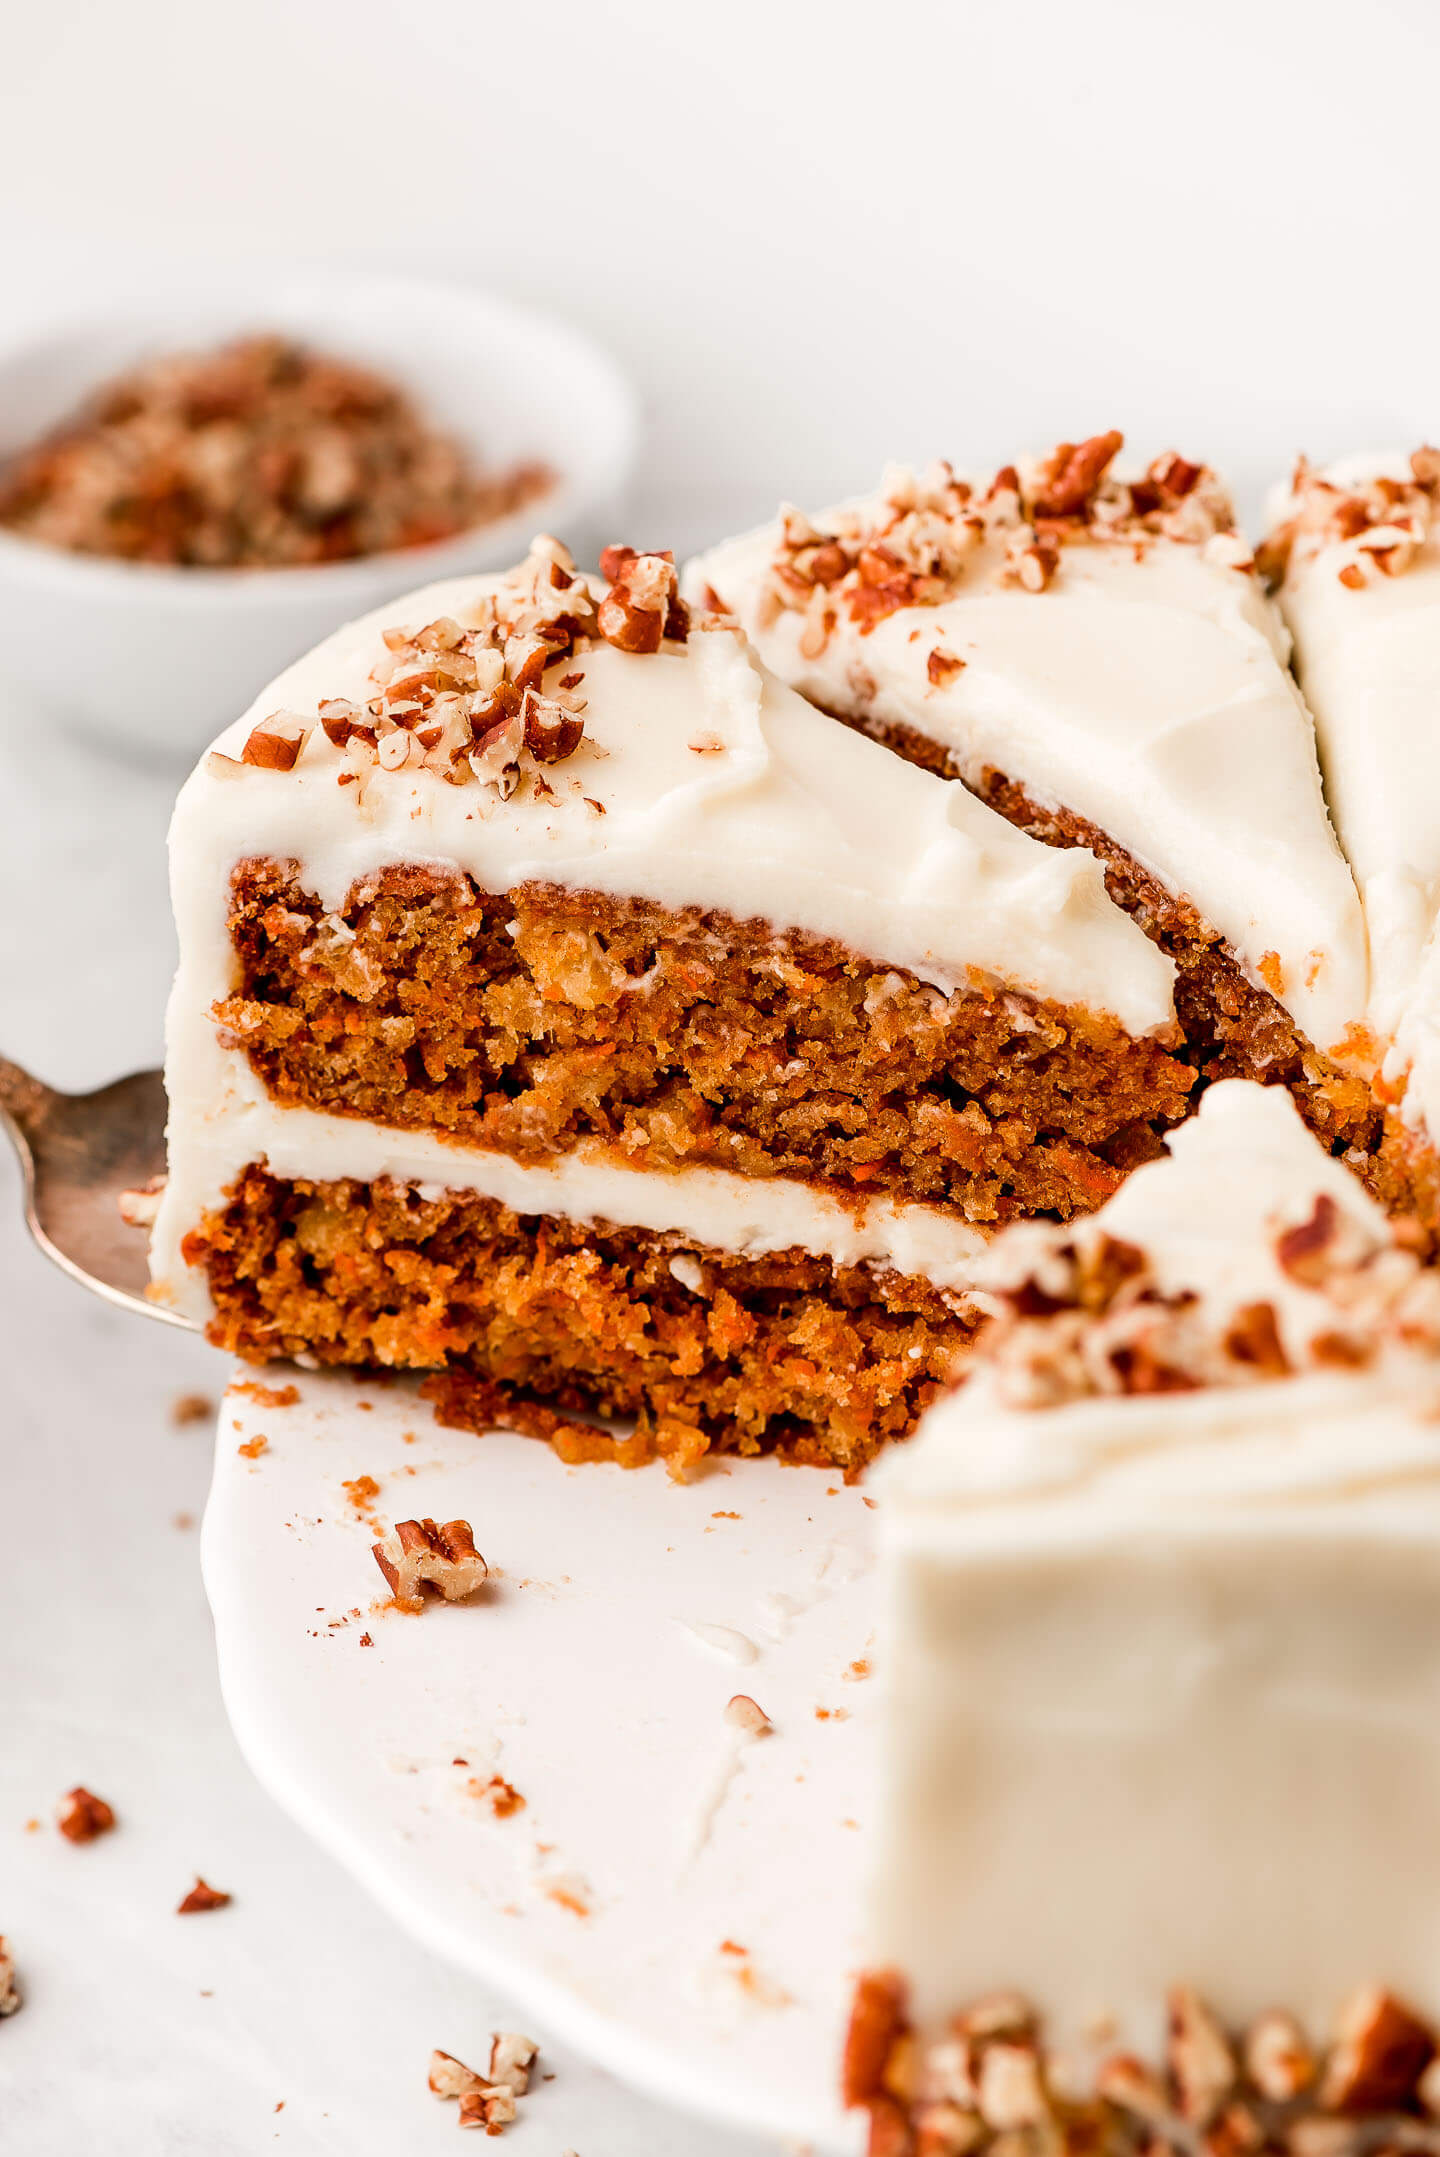 A slice of Easy Carrot Cake being removed from the cake stand.